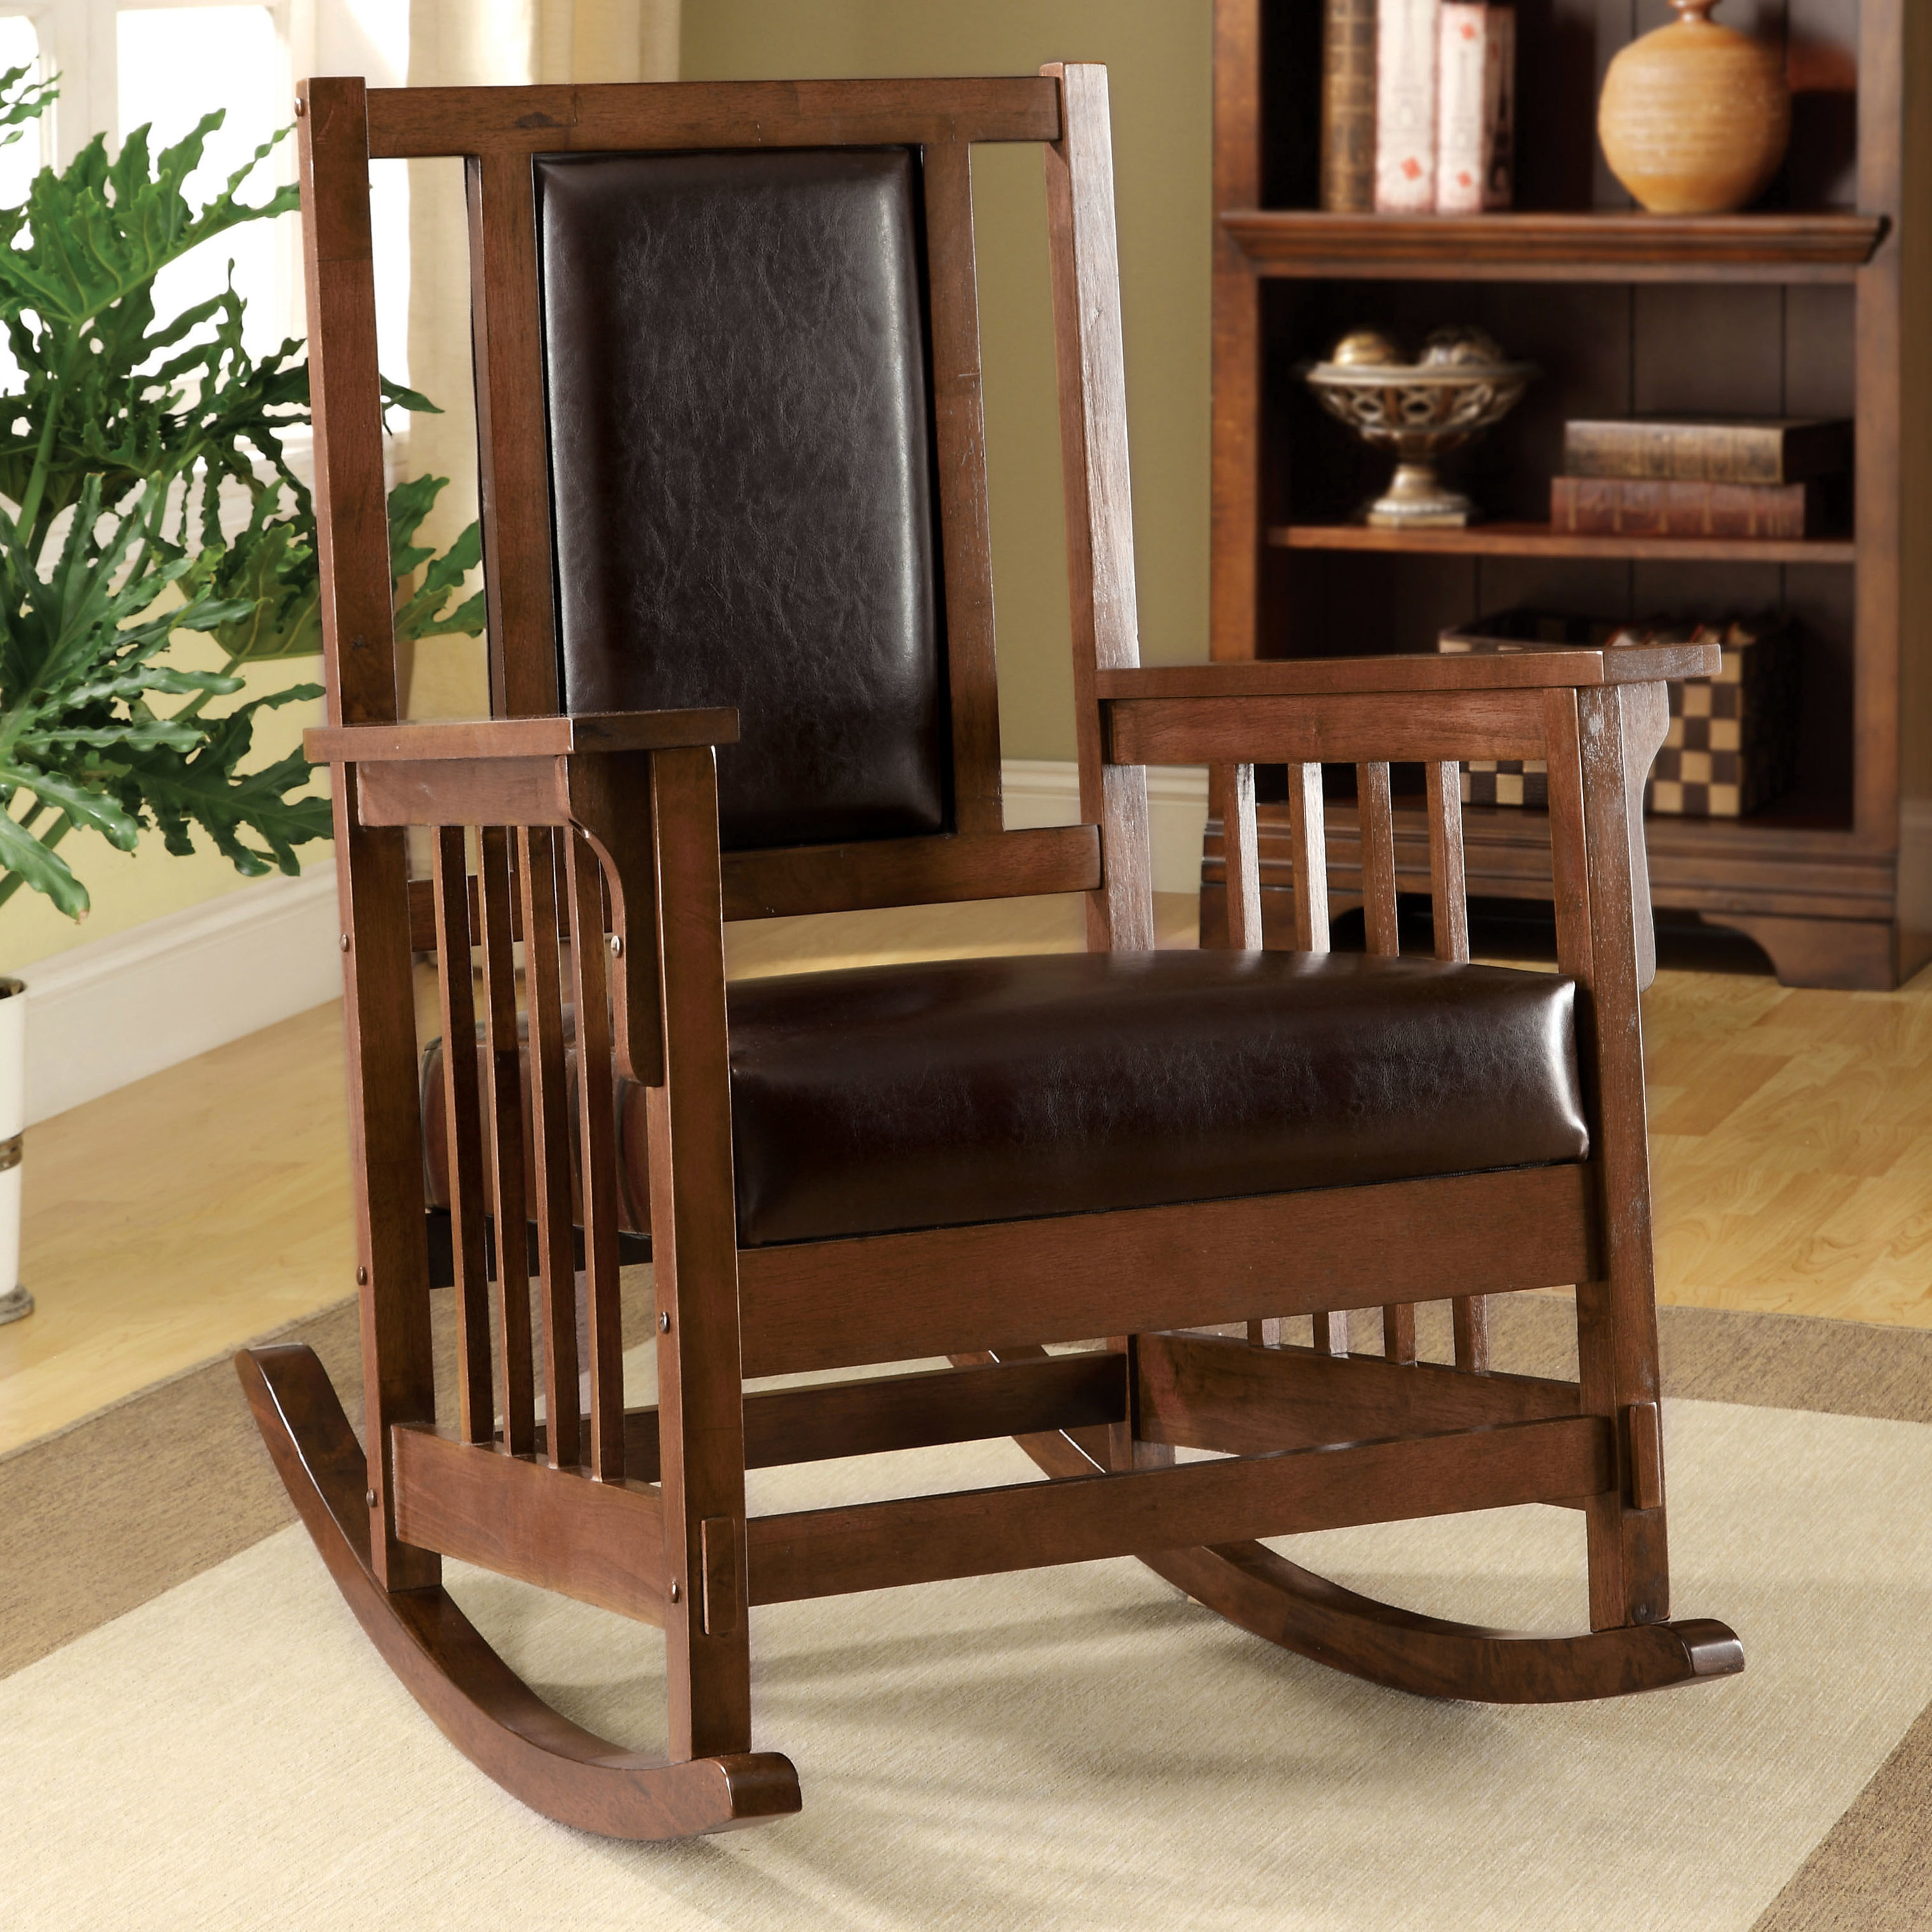 Valley Leatherette Arm Rocking Chair With Faux Leather Upholstered Wooden Rocking Chairs With Looped Arms, Brown (View 17 of 20)